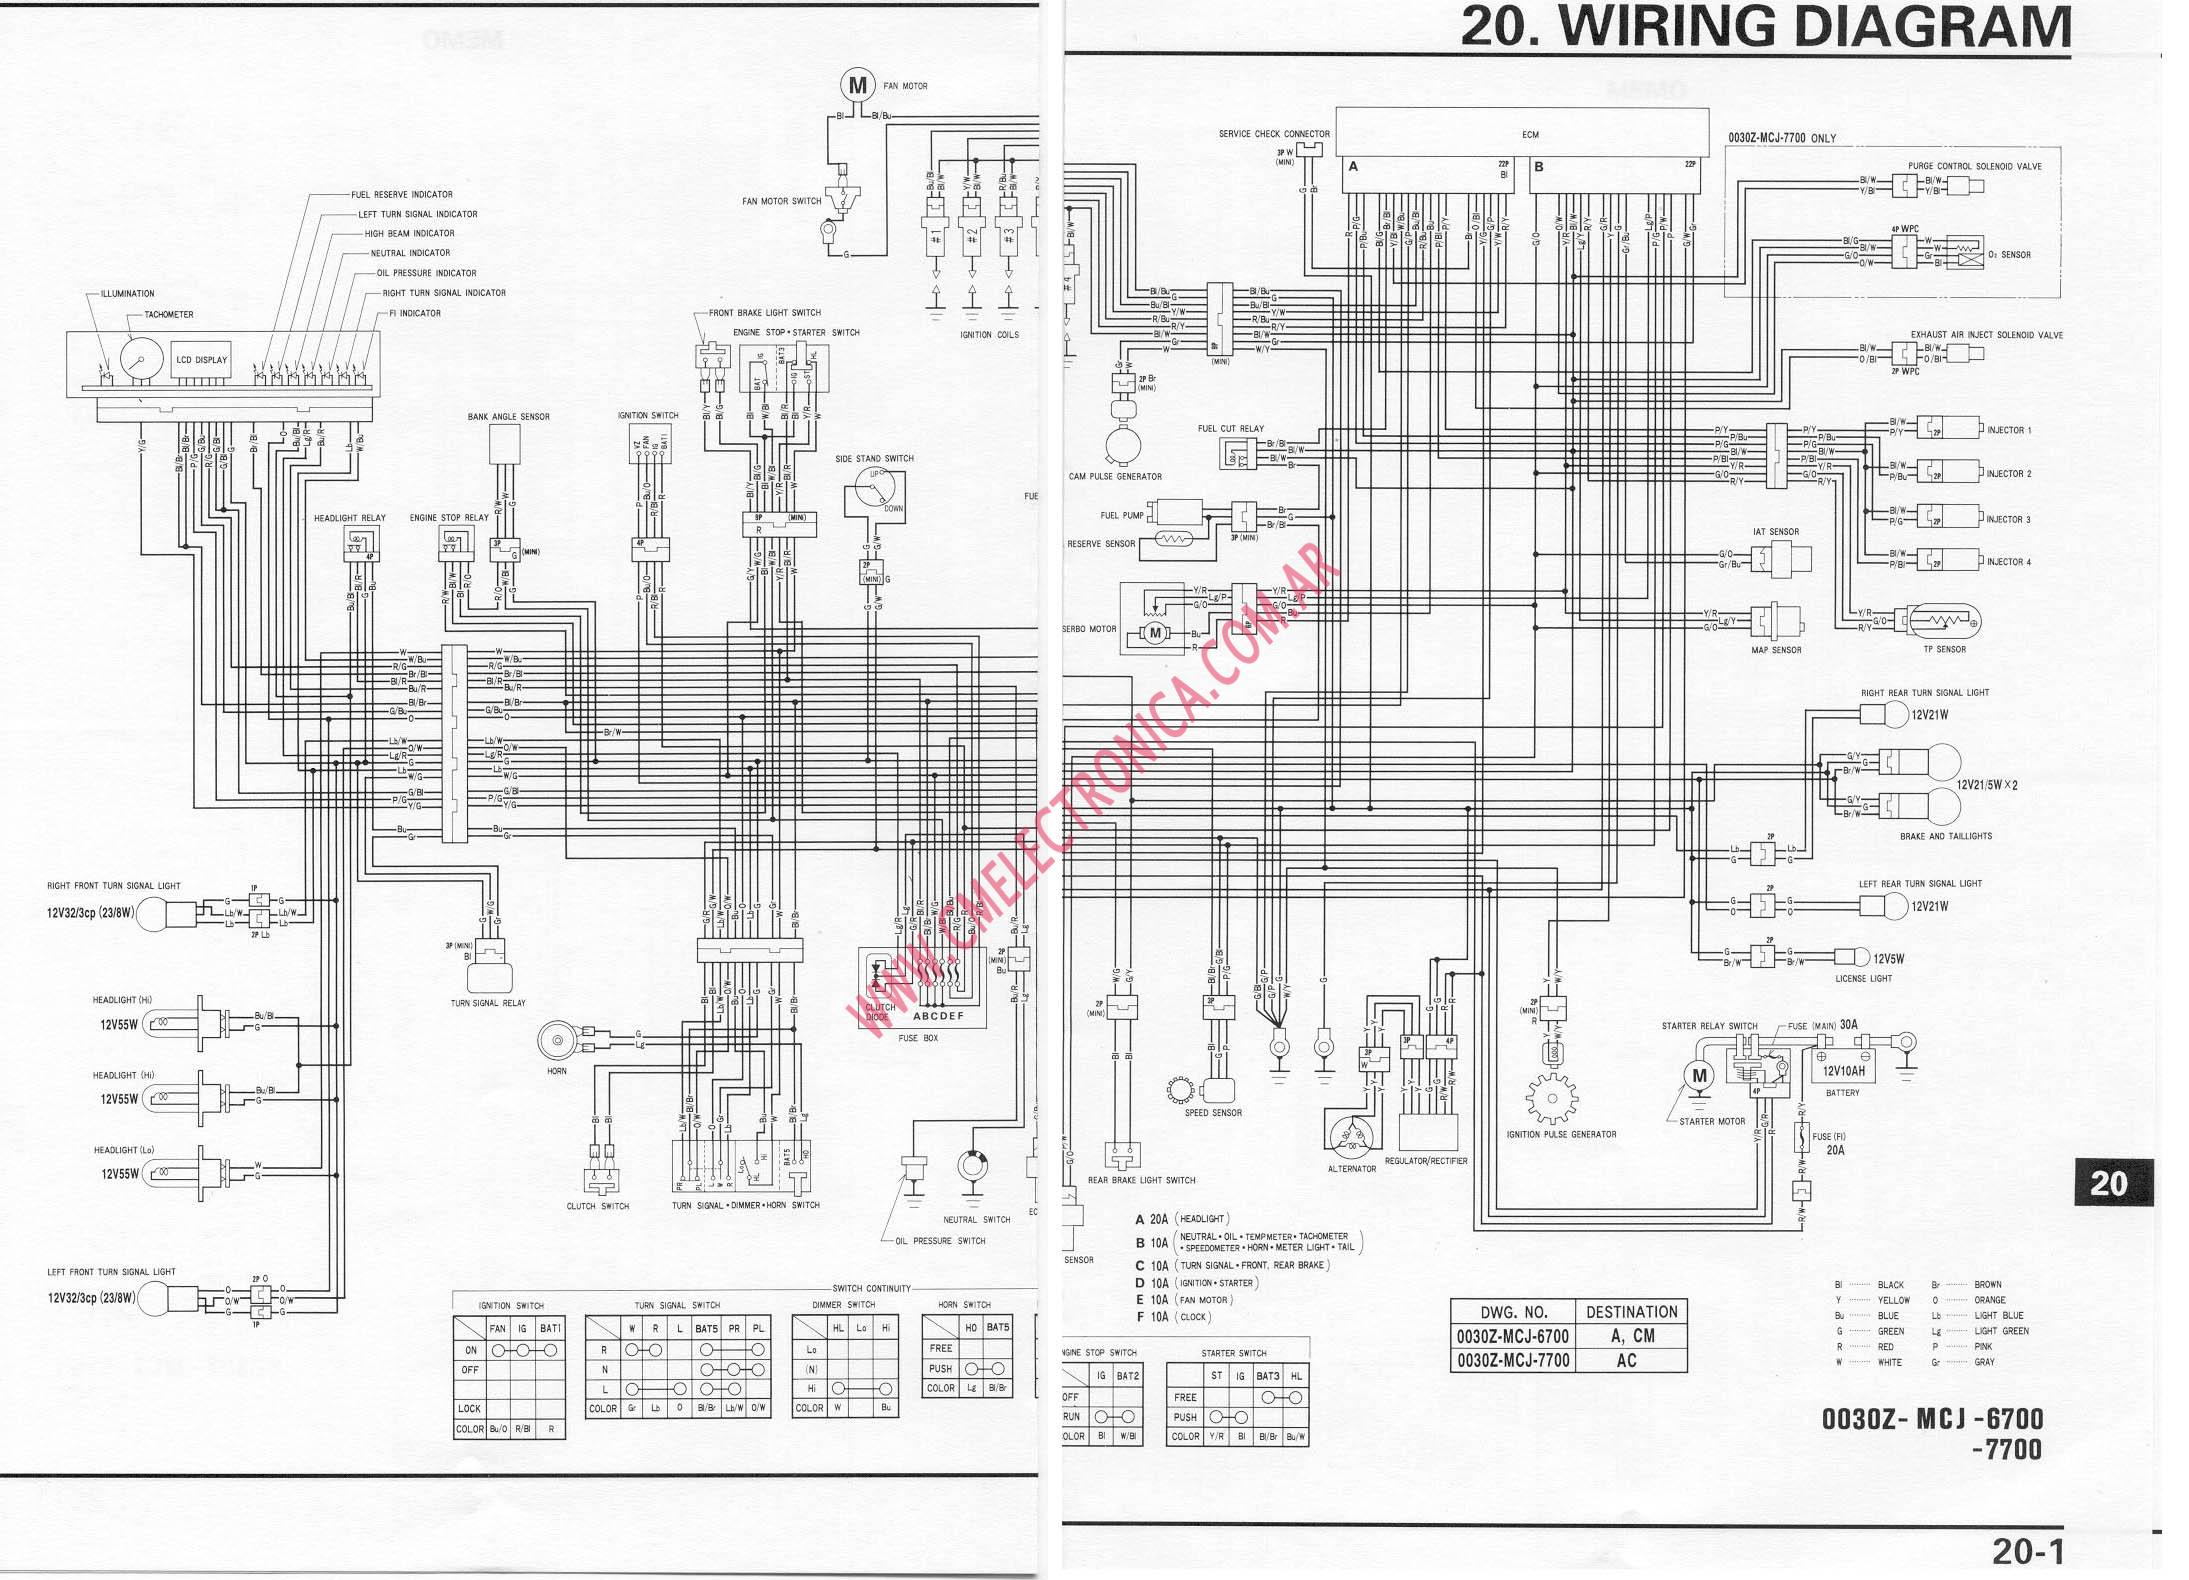 2008 honda goldwing wiring diagram honda 1998 cbr900rr not firing. | netrider honda blackbird wiring diagram #1